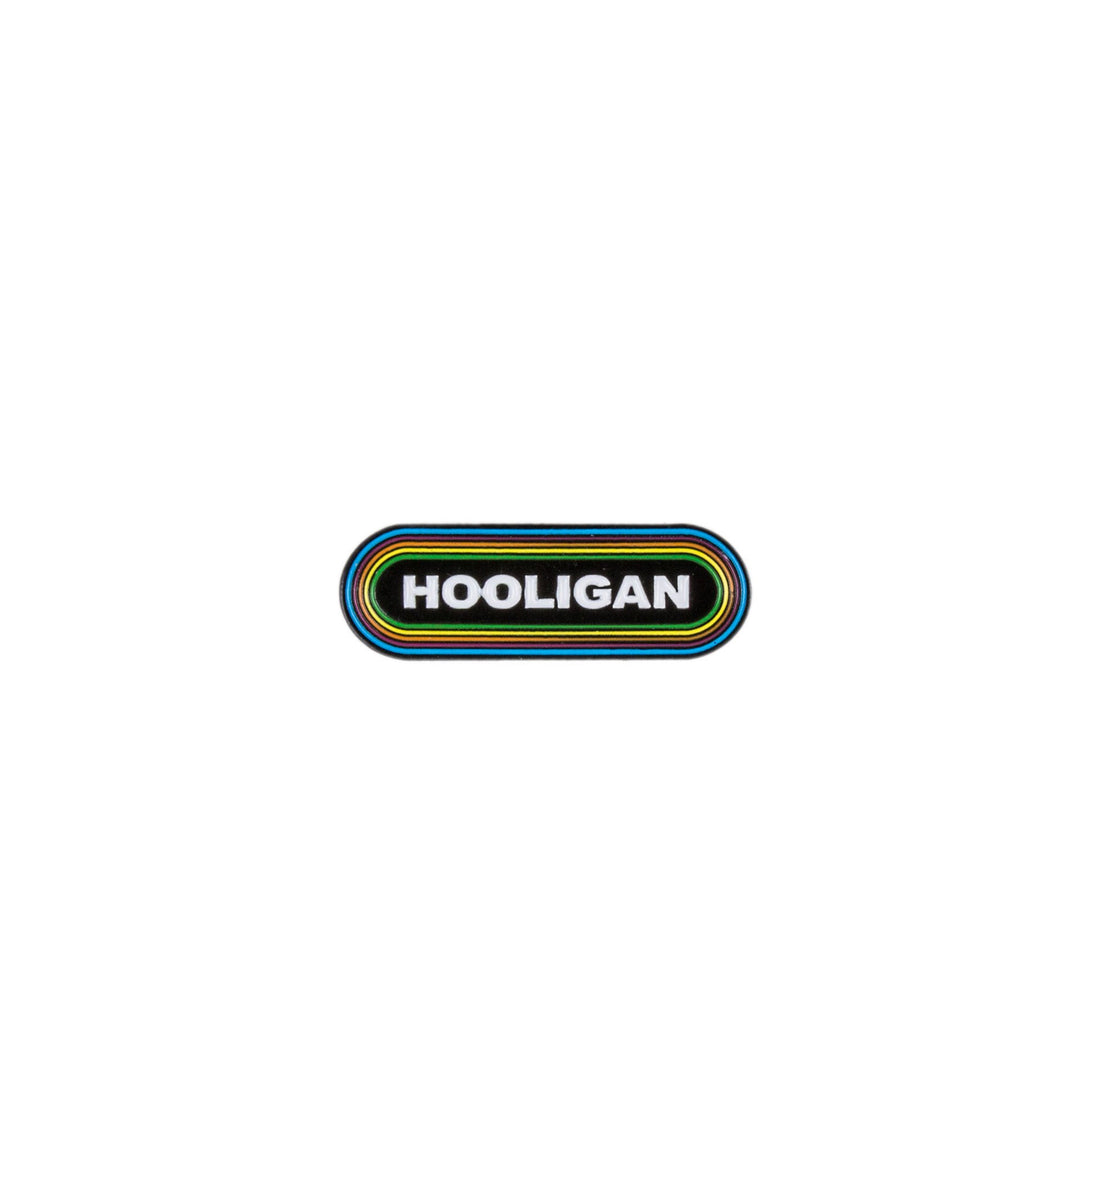 INR Hooligan Enamel Pin - Accessories: Pins - Iron and Resin